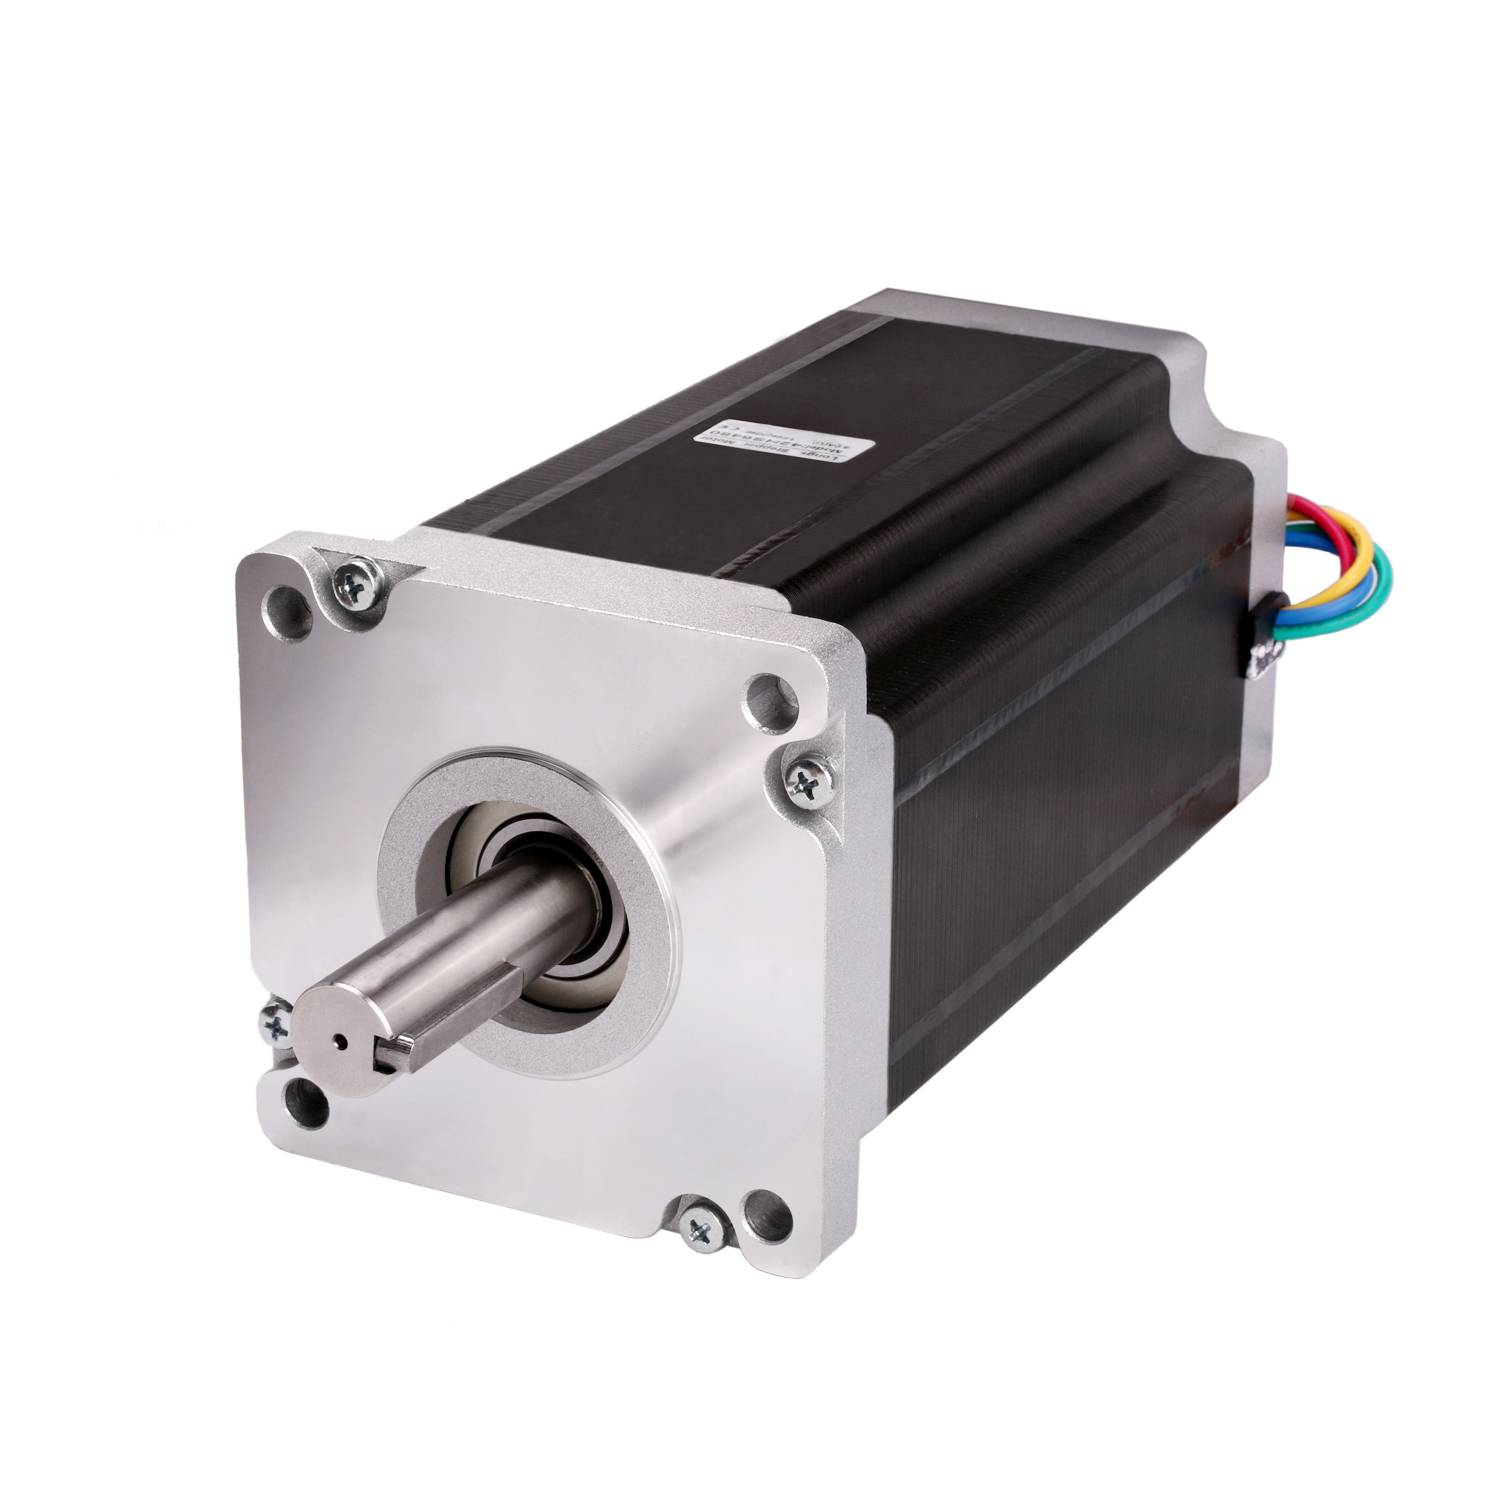 Հիբրիդ stepper MOTOR-Nema42 Featured Image